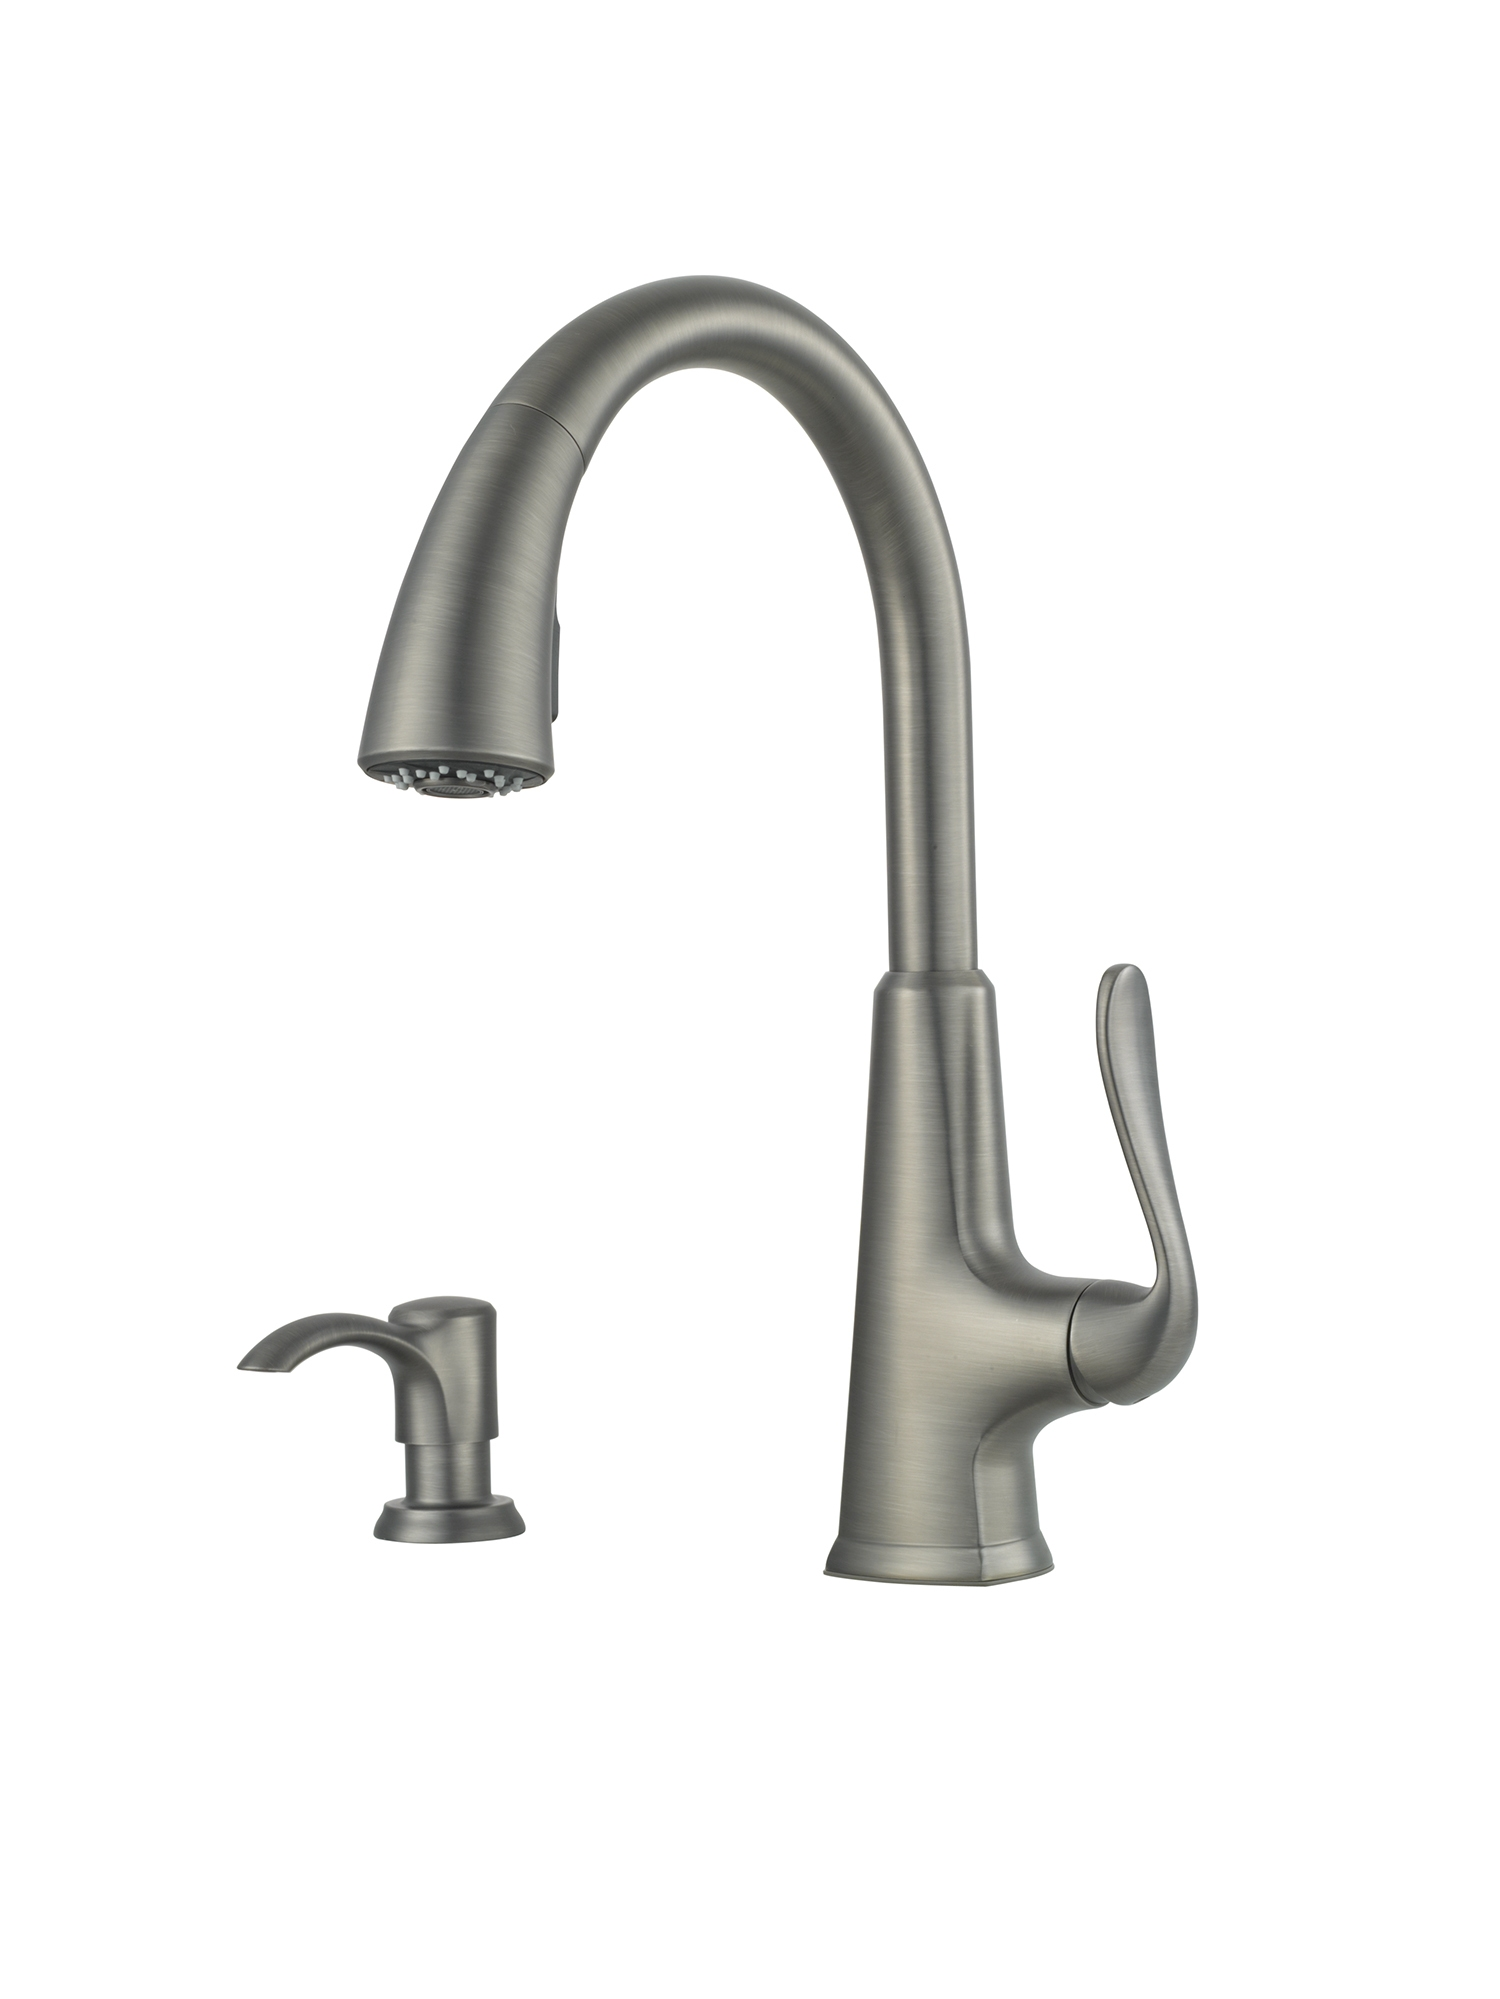 Ideas, pfister pasadena bathroom faucet slate pfister pasadena bathroom faucet slate pfister makes a statement in slate faucet finish business wire 1500 x 1999  .